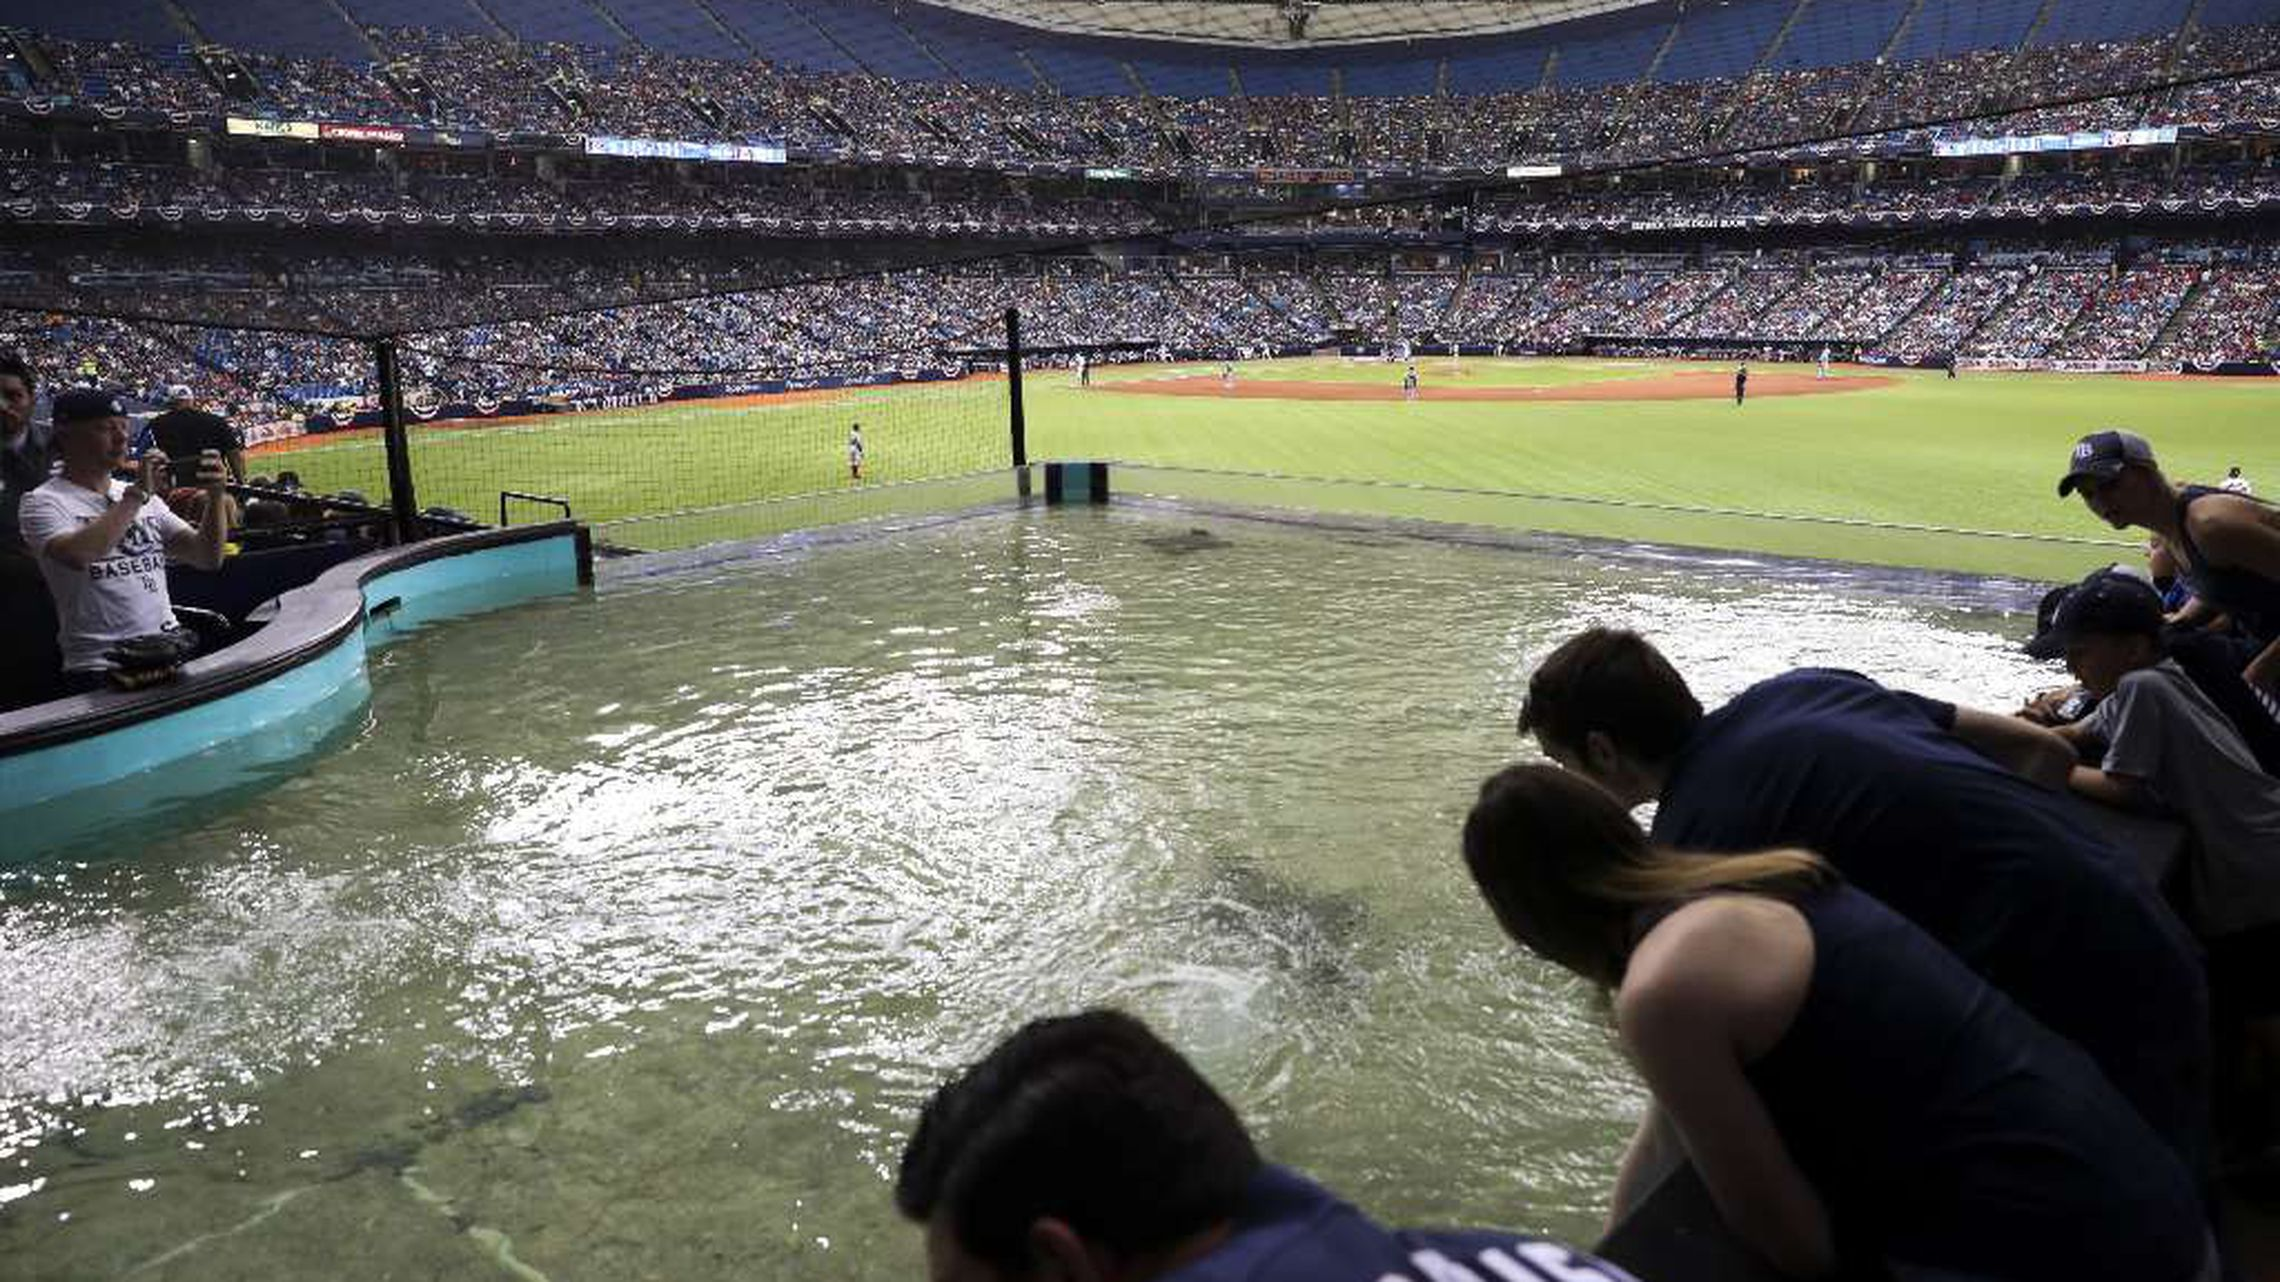 rays close the upper deck at tropicana field shrinking baseball s smallest seating capacity rays close the upper deck at tropicana